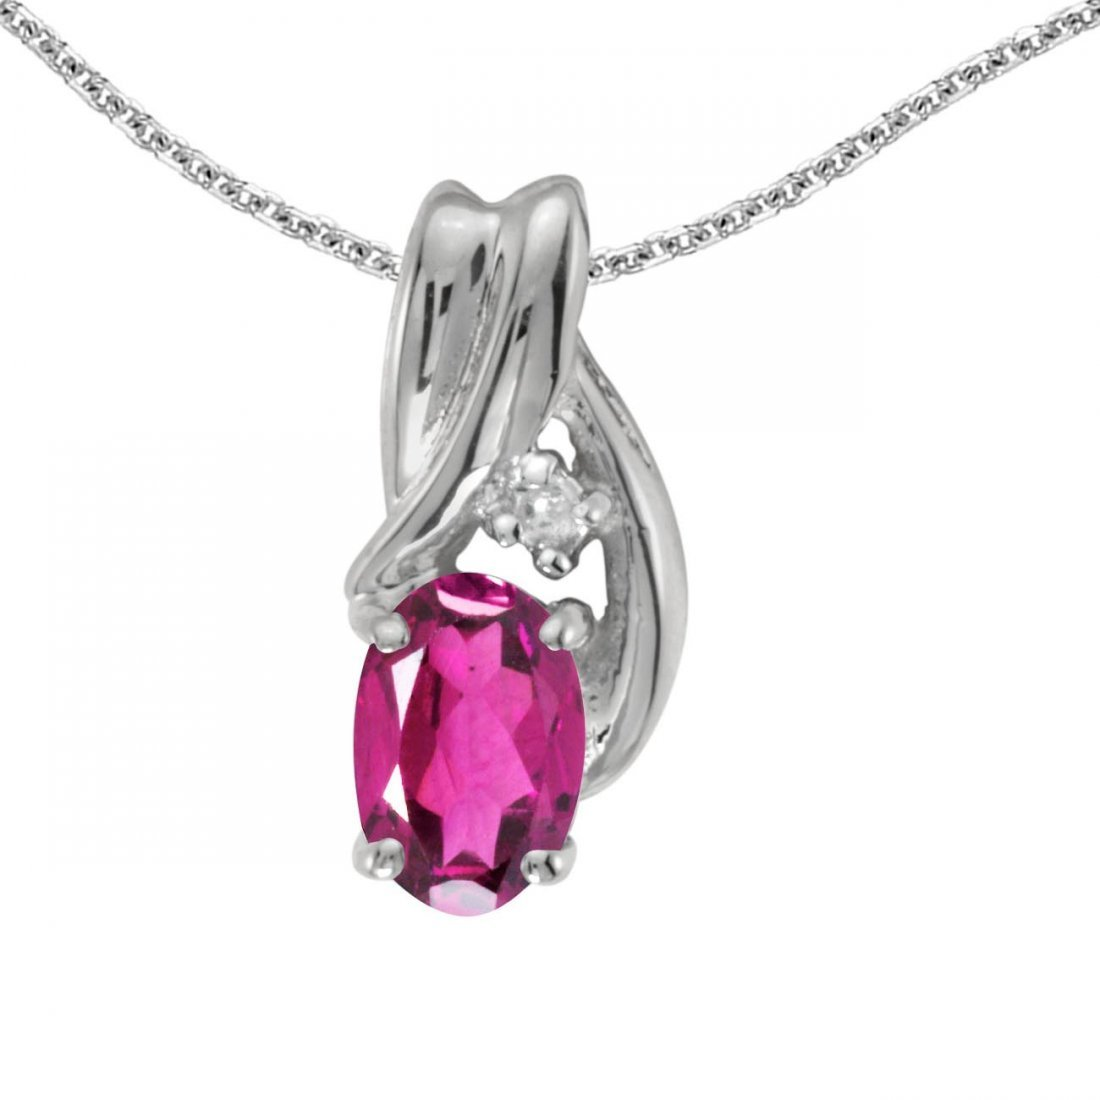 Certified 14k White Gold Oval Pink Topaz And Diamond Pe